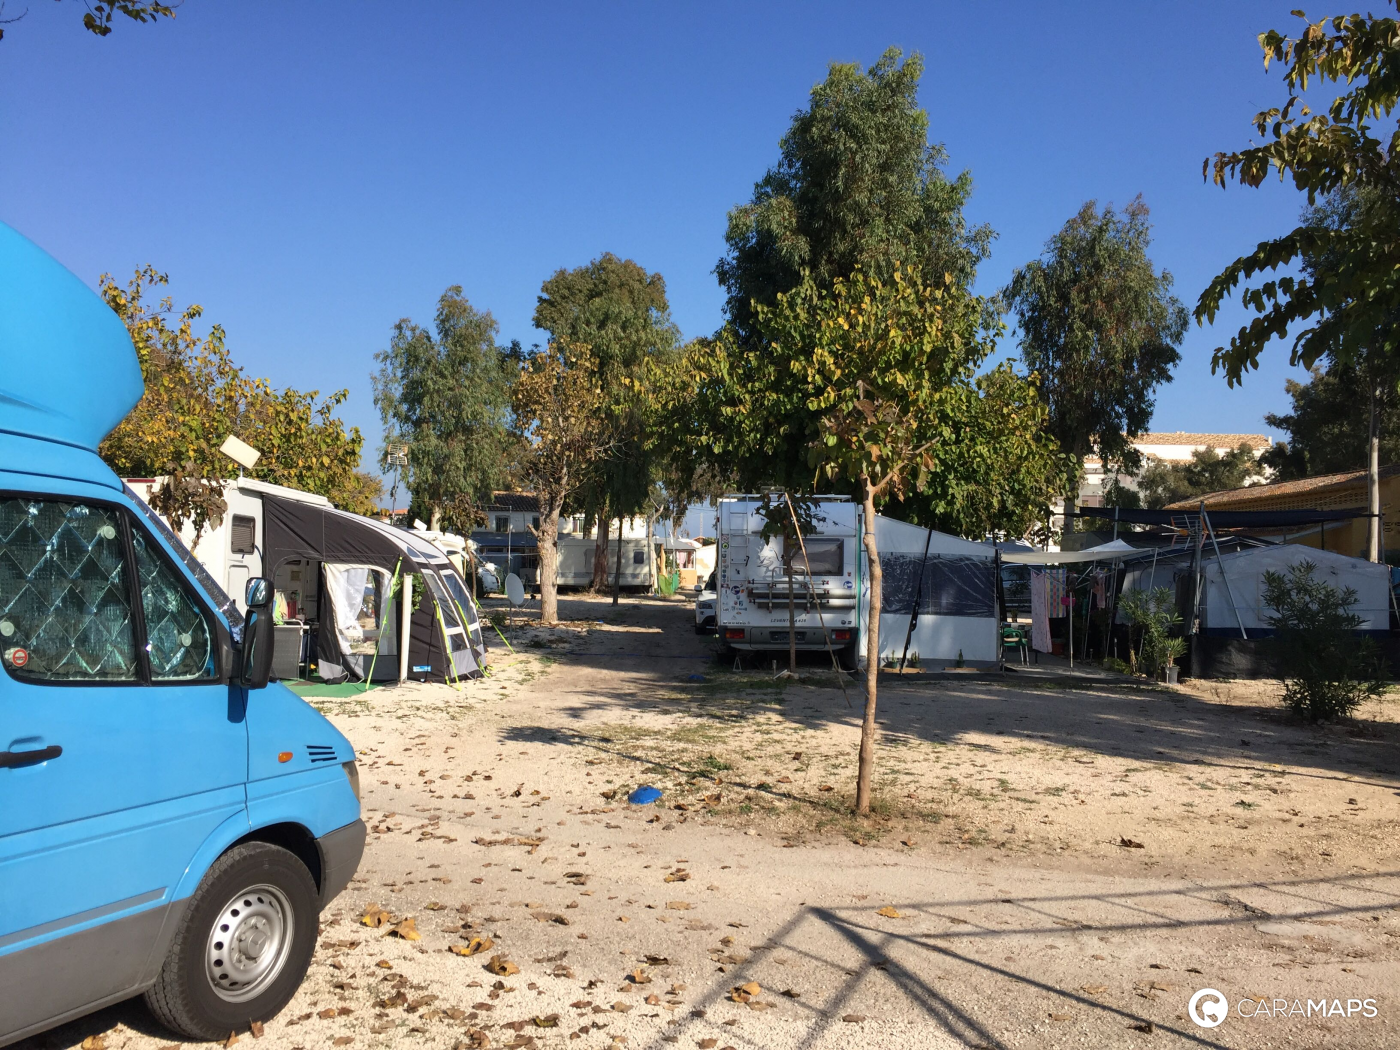 Discover Camping Los Patos A Step By Caramaps